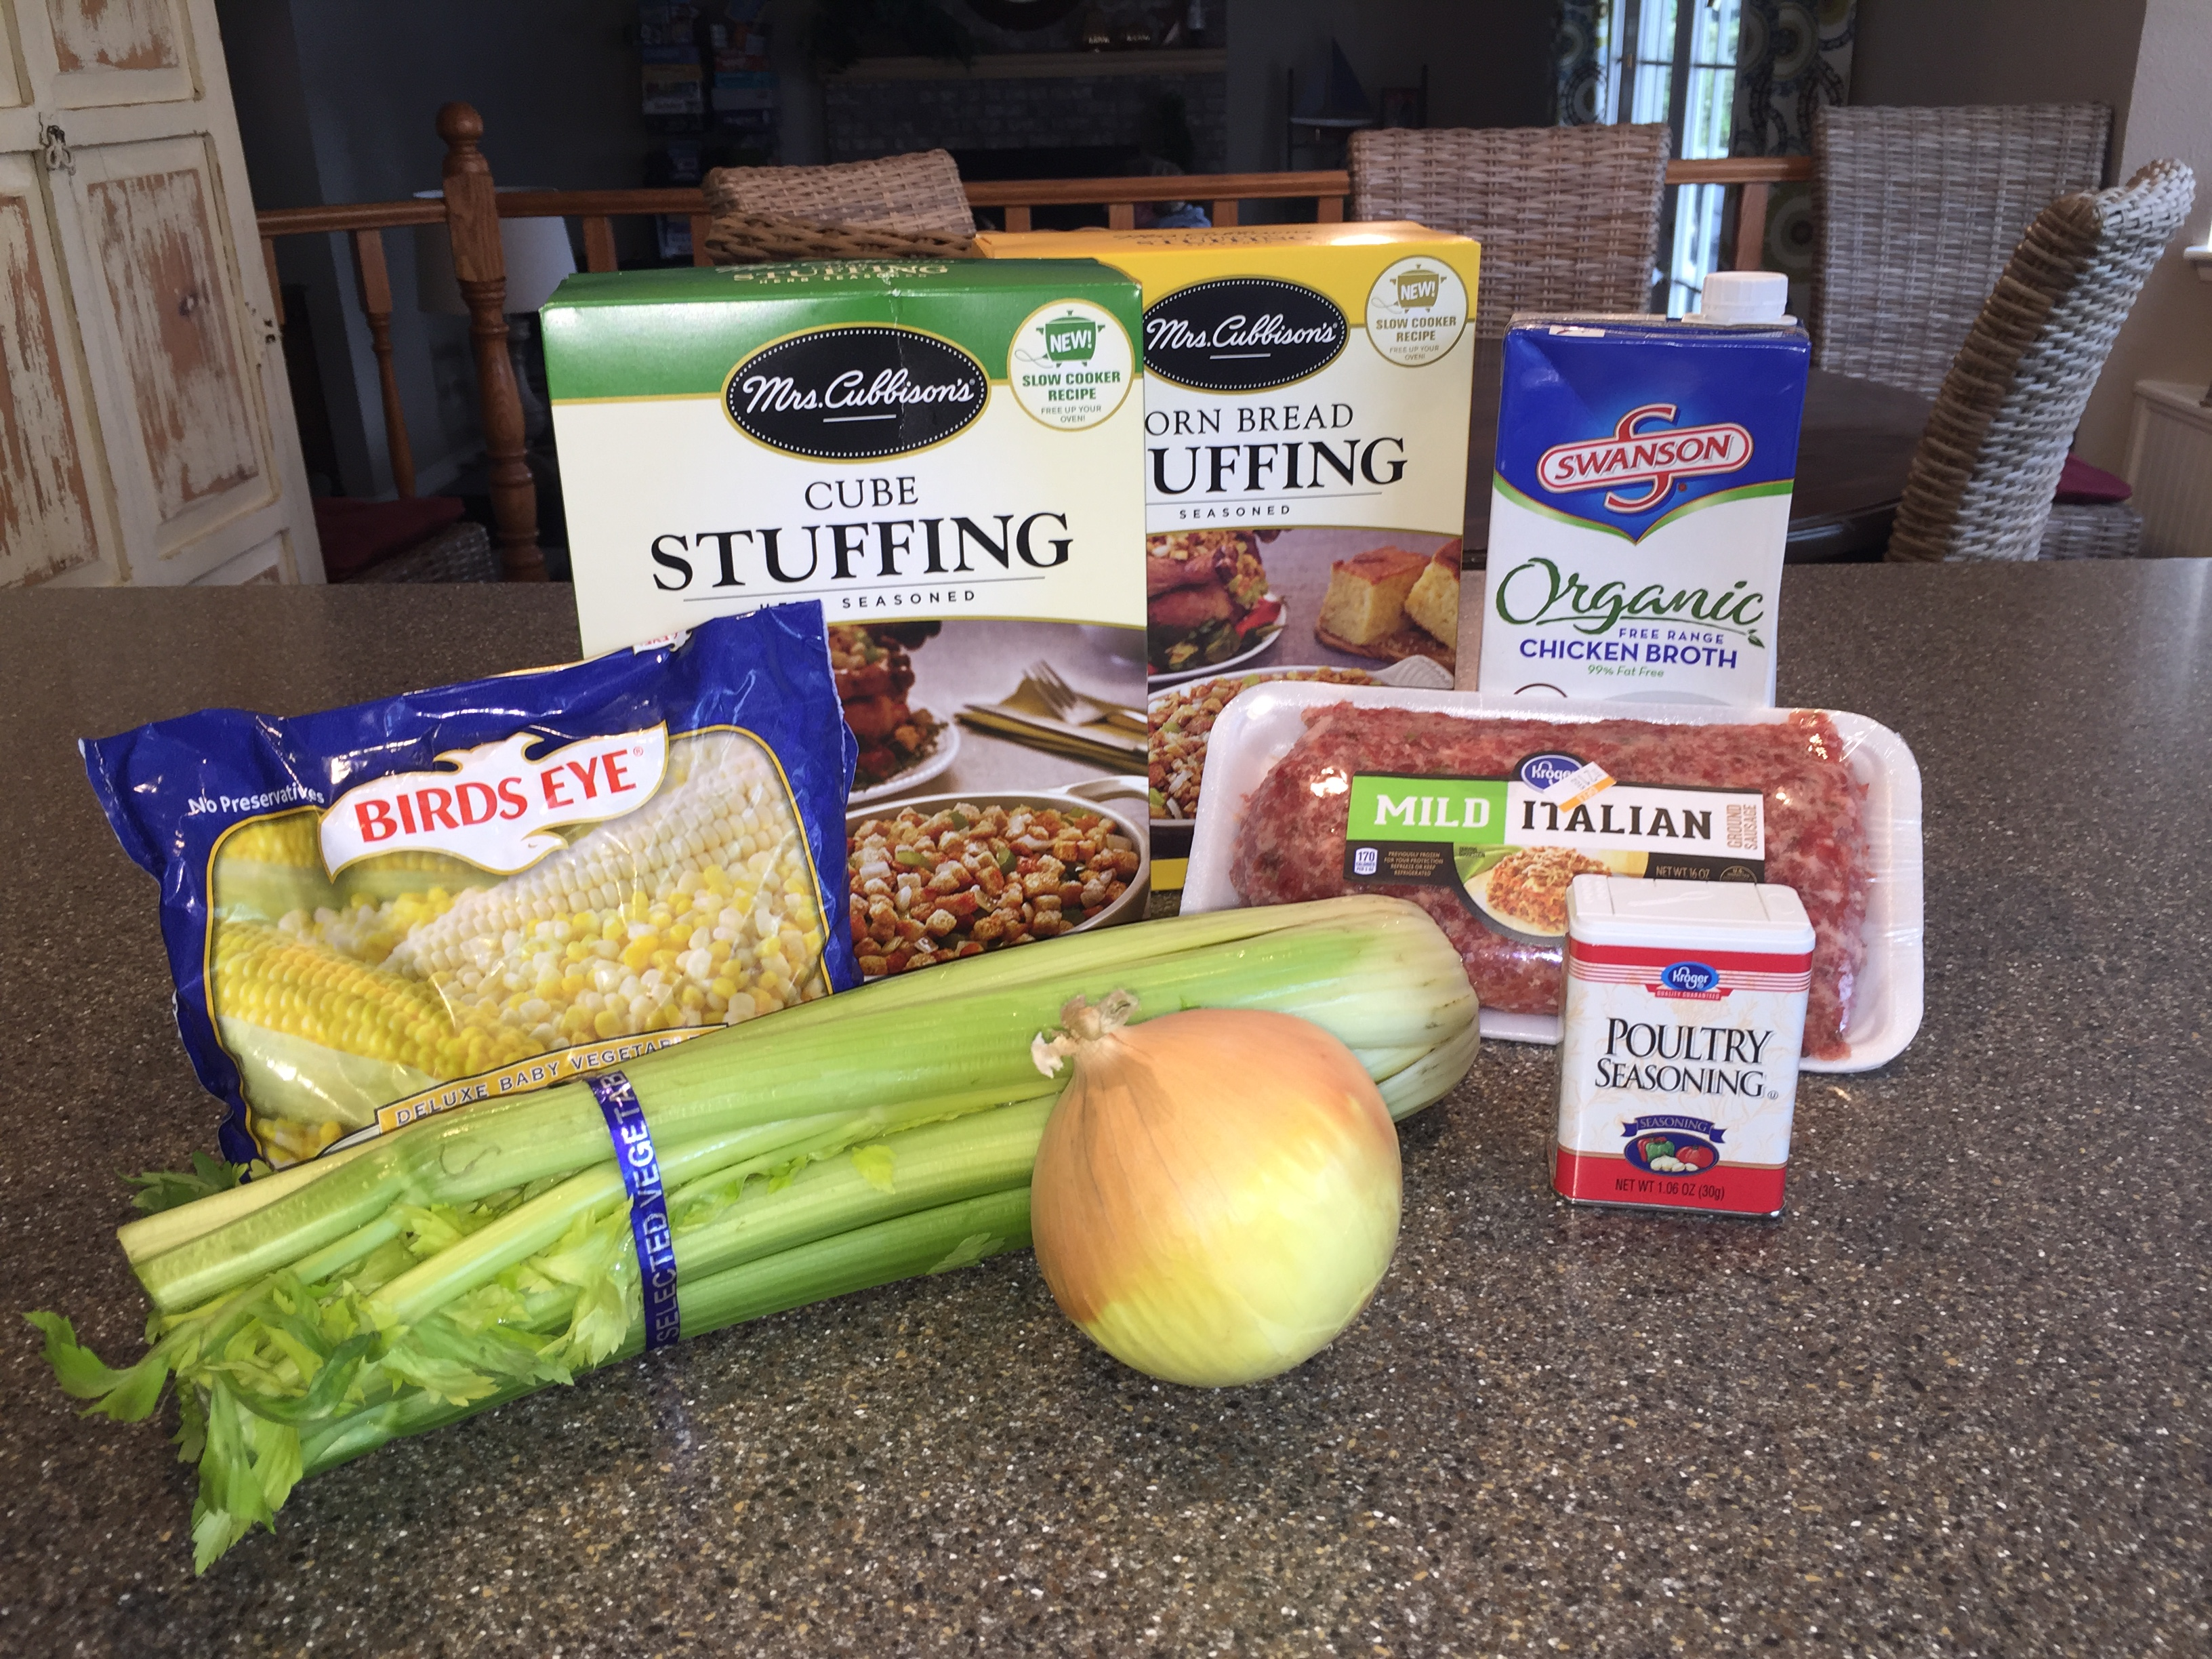 Ingredients for Stuffing with Sausage recipe